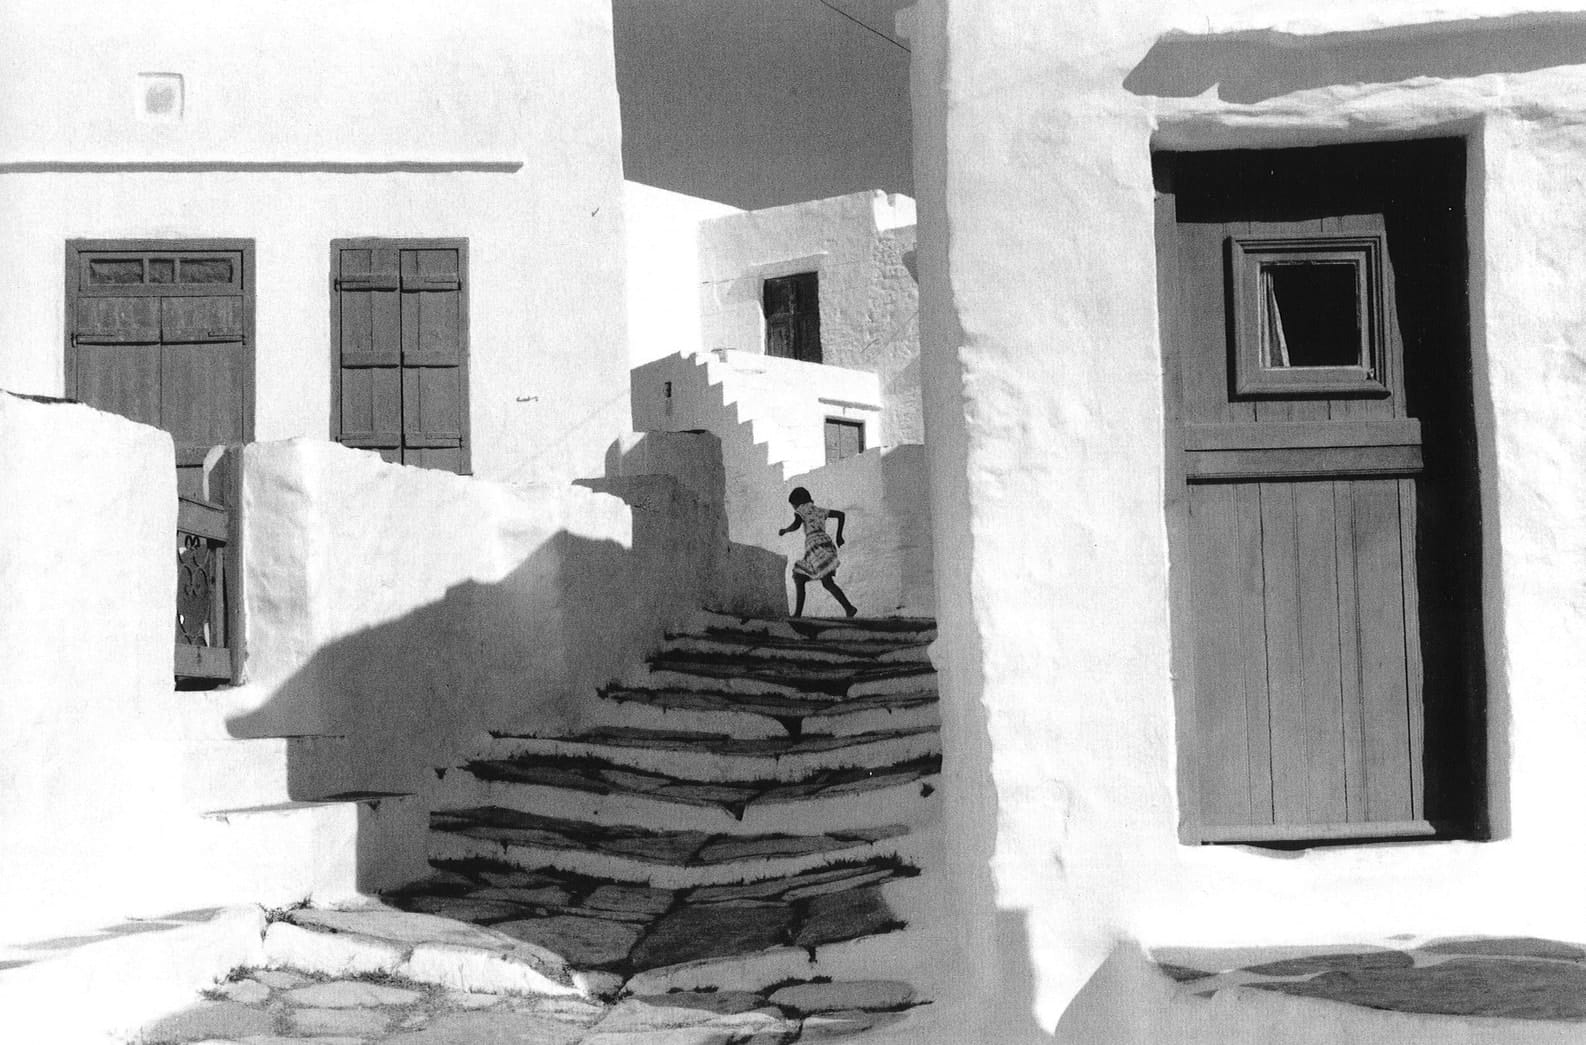 Henri Cartier-Bresson Siphnos, Greece (Girl on Stairs)